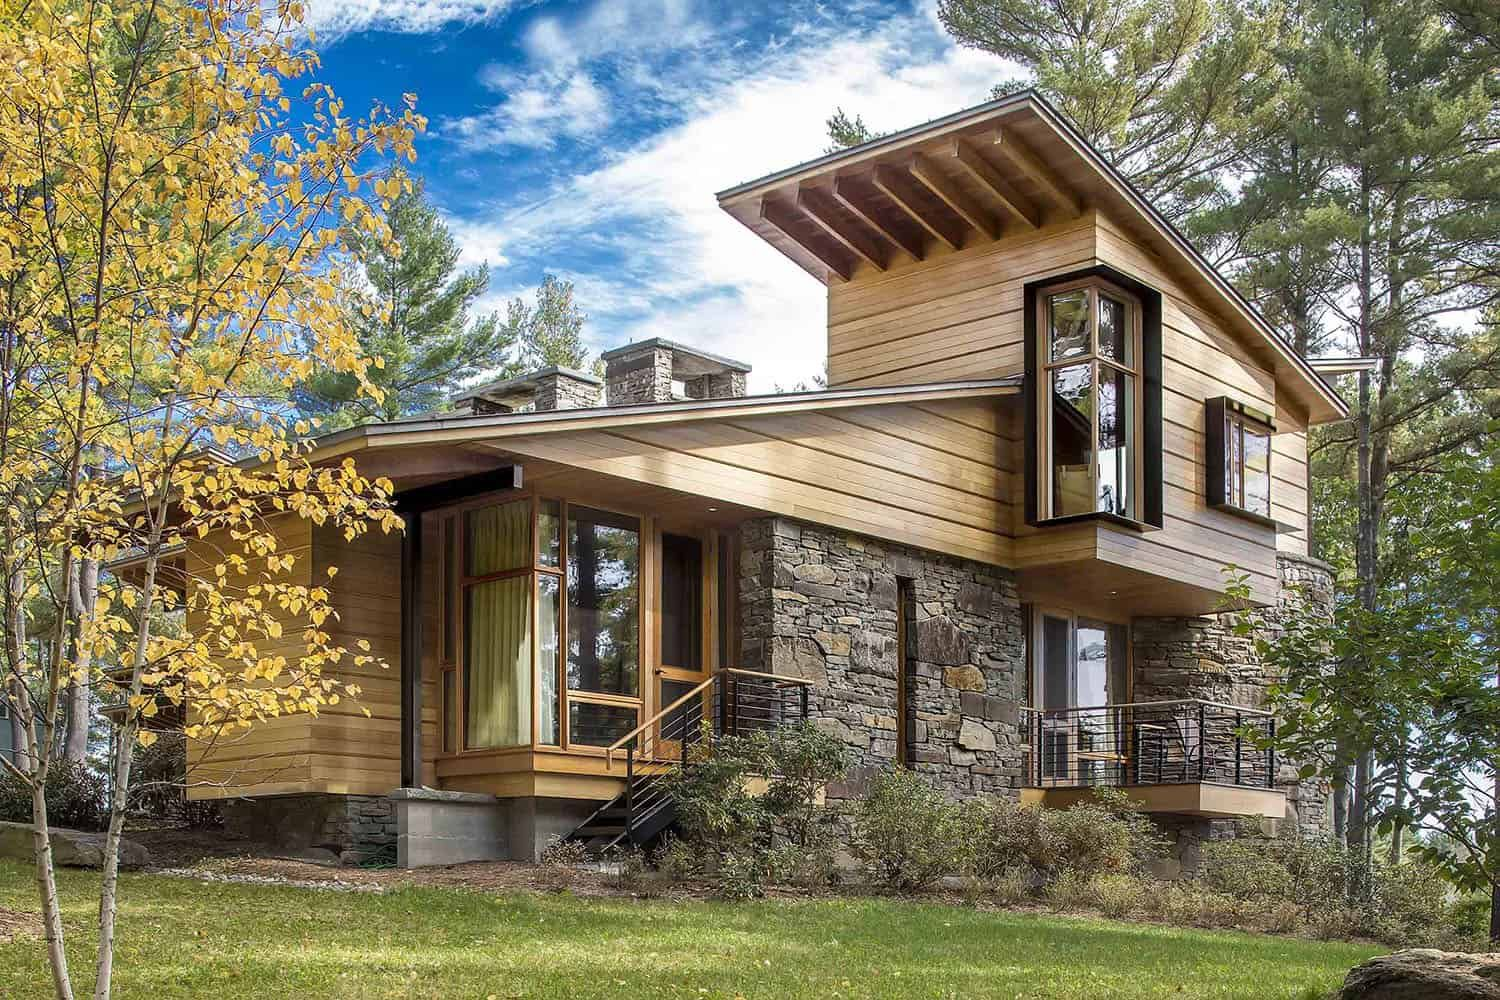 Rustic Modern House Organically Forms Into Hillside In The Berkshires Modern House Exterior House Exterior Facade House